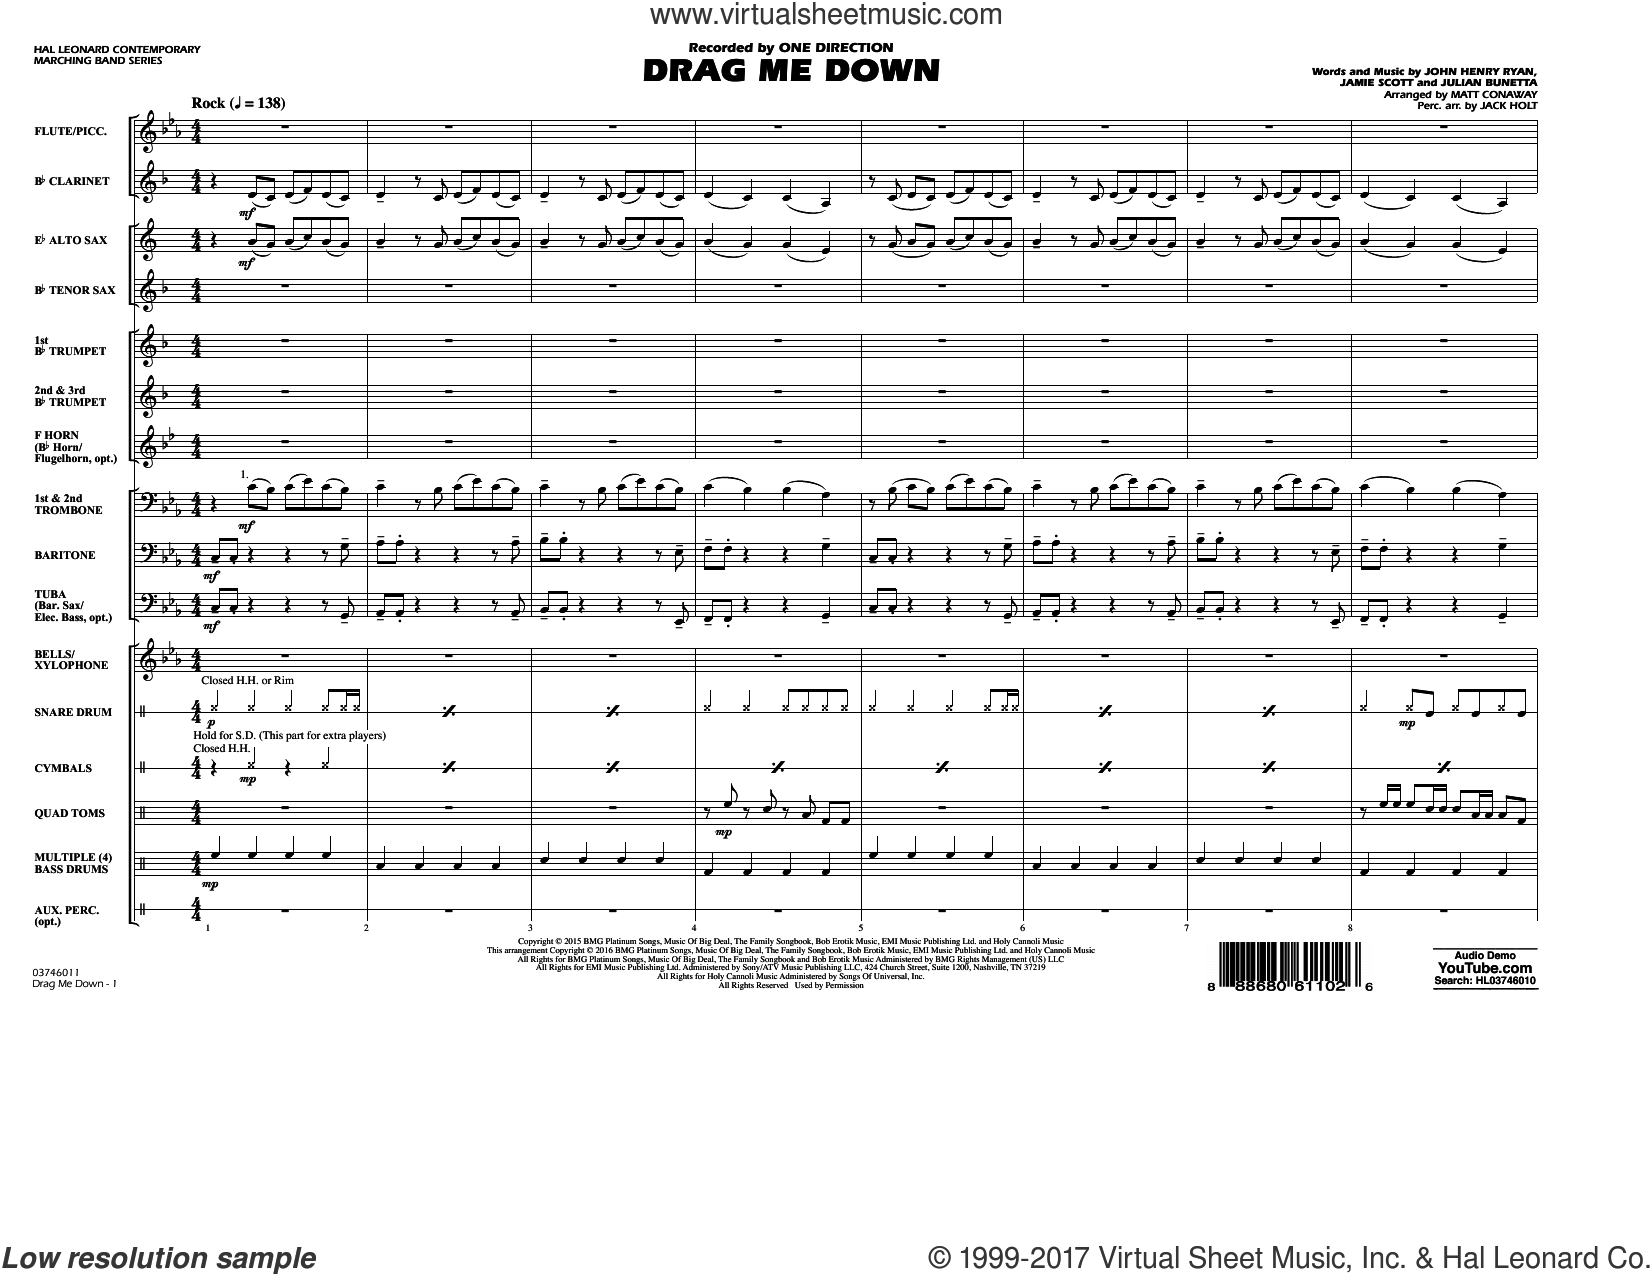 Conaway - Drag Me Down sheet music (complete collection) for marching band